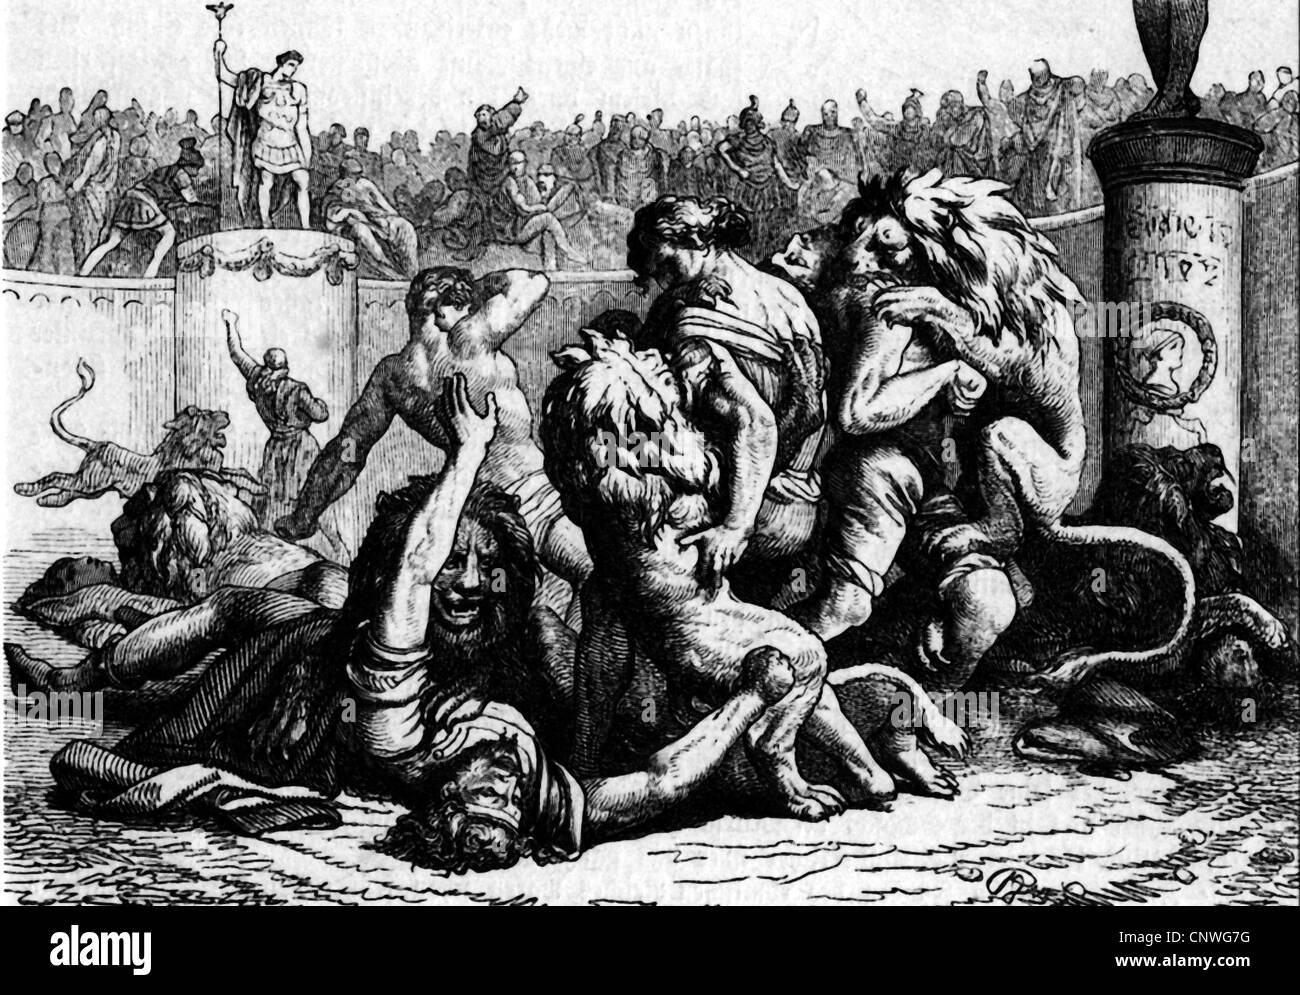 roman persecution of chrisitians We would like to tackle two important questions about the treatment of christians in the roman empire was persecution a consistent imperial policy, and what types of.